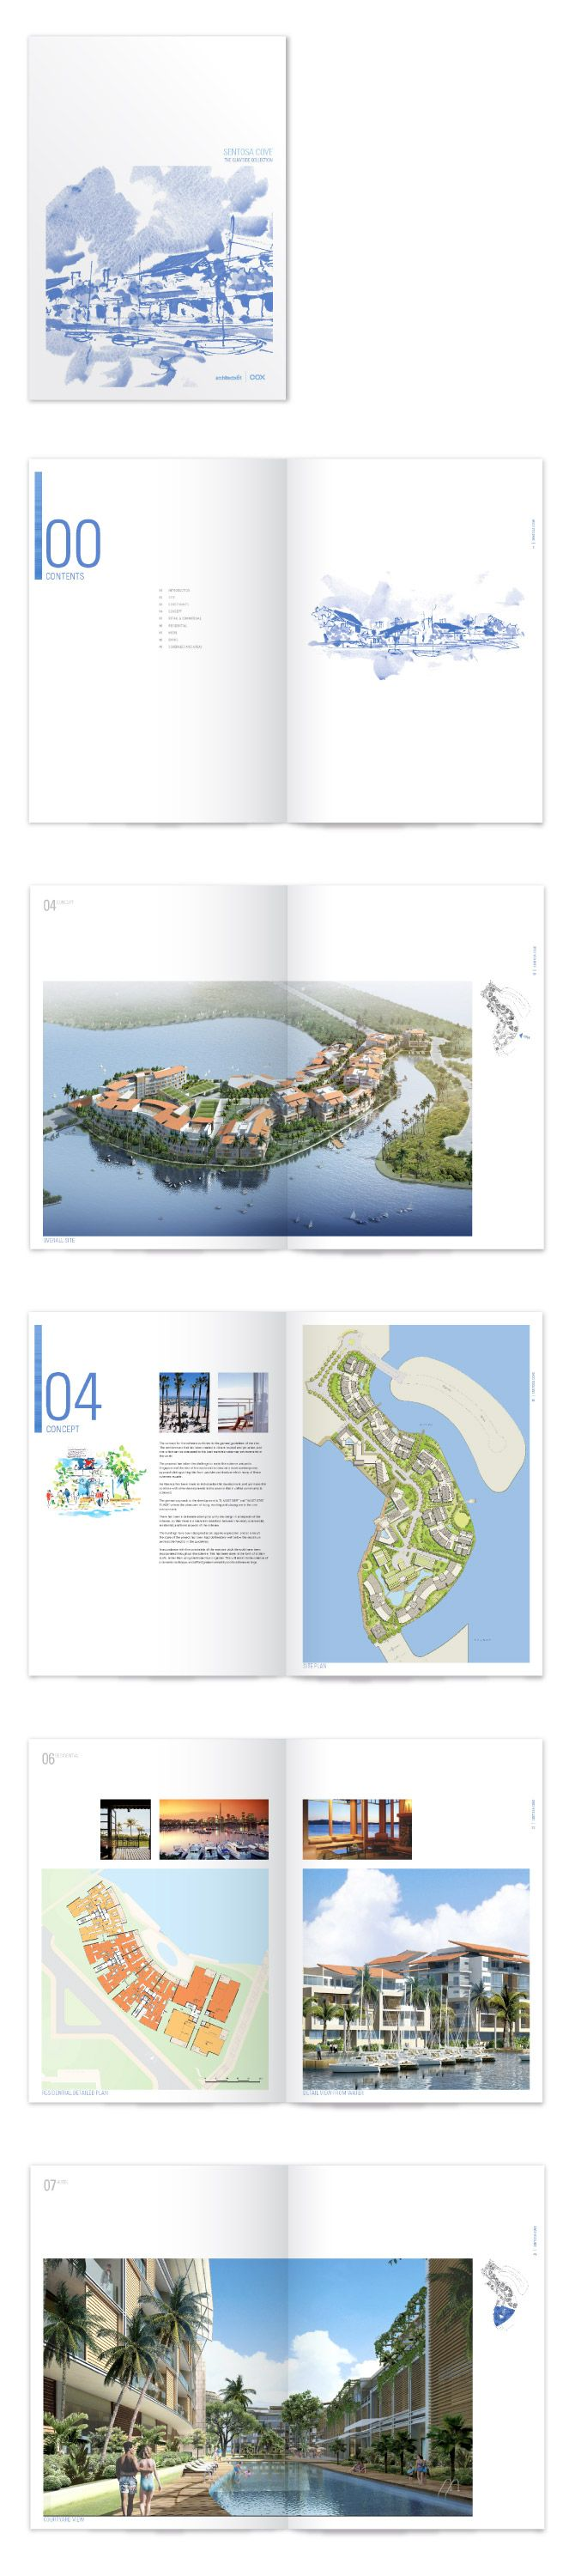 Architecture Design Brochure 156 best architecture brochures images on pinterest | portfolio